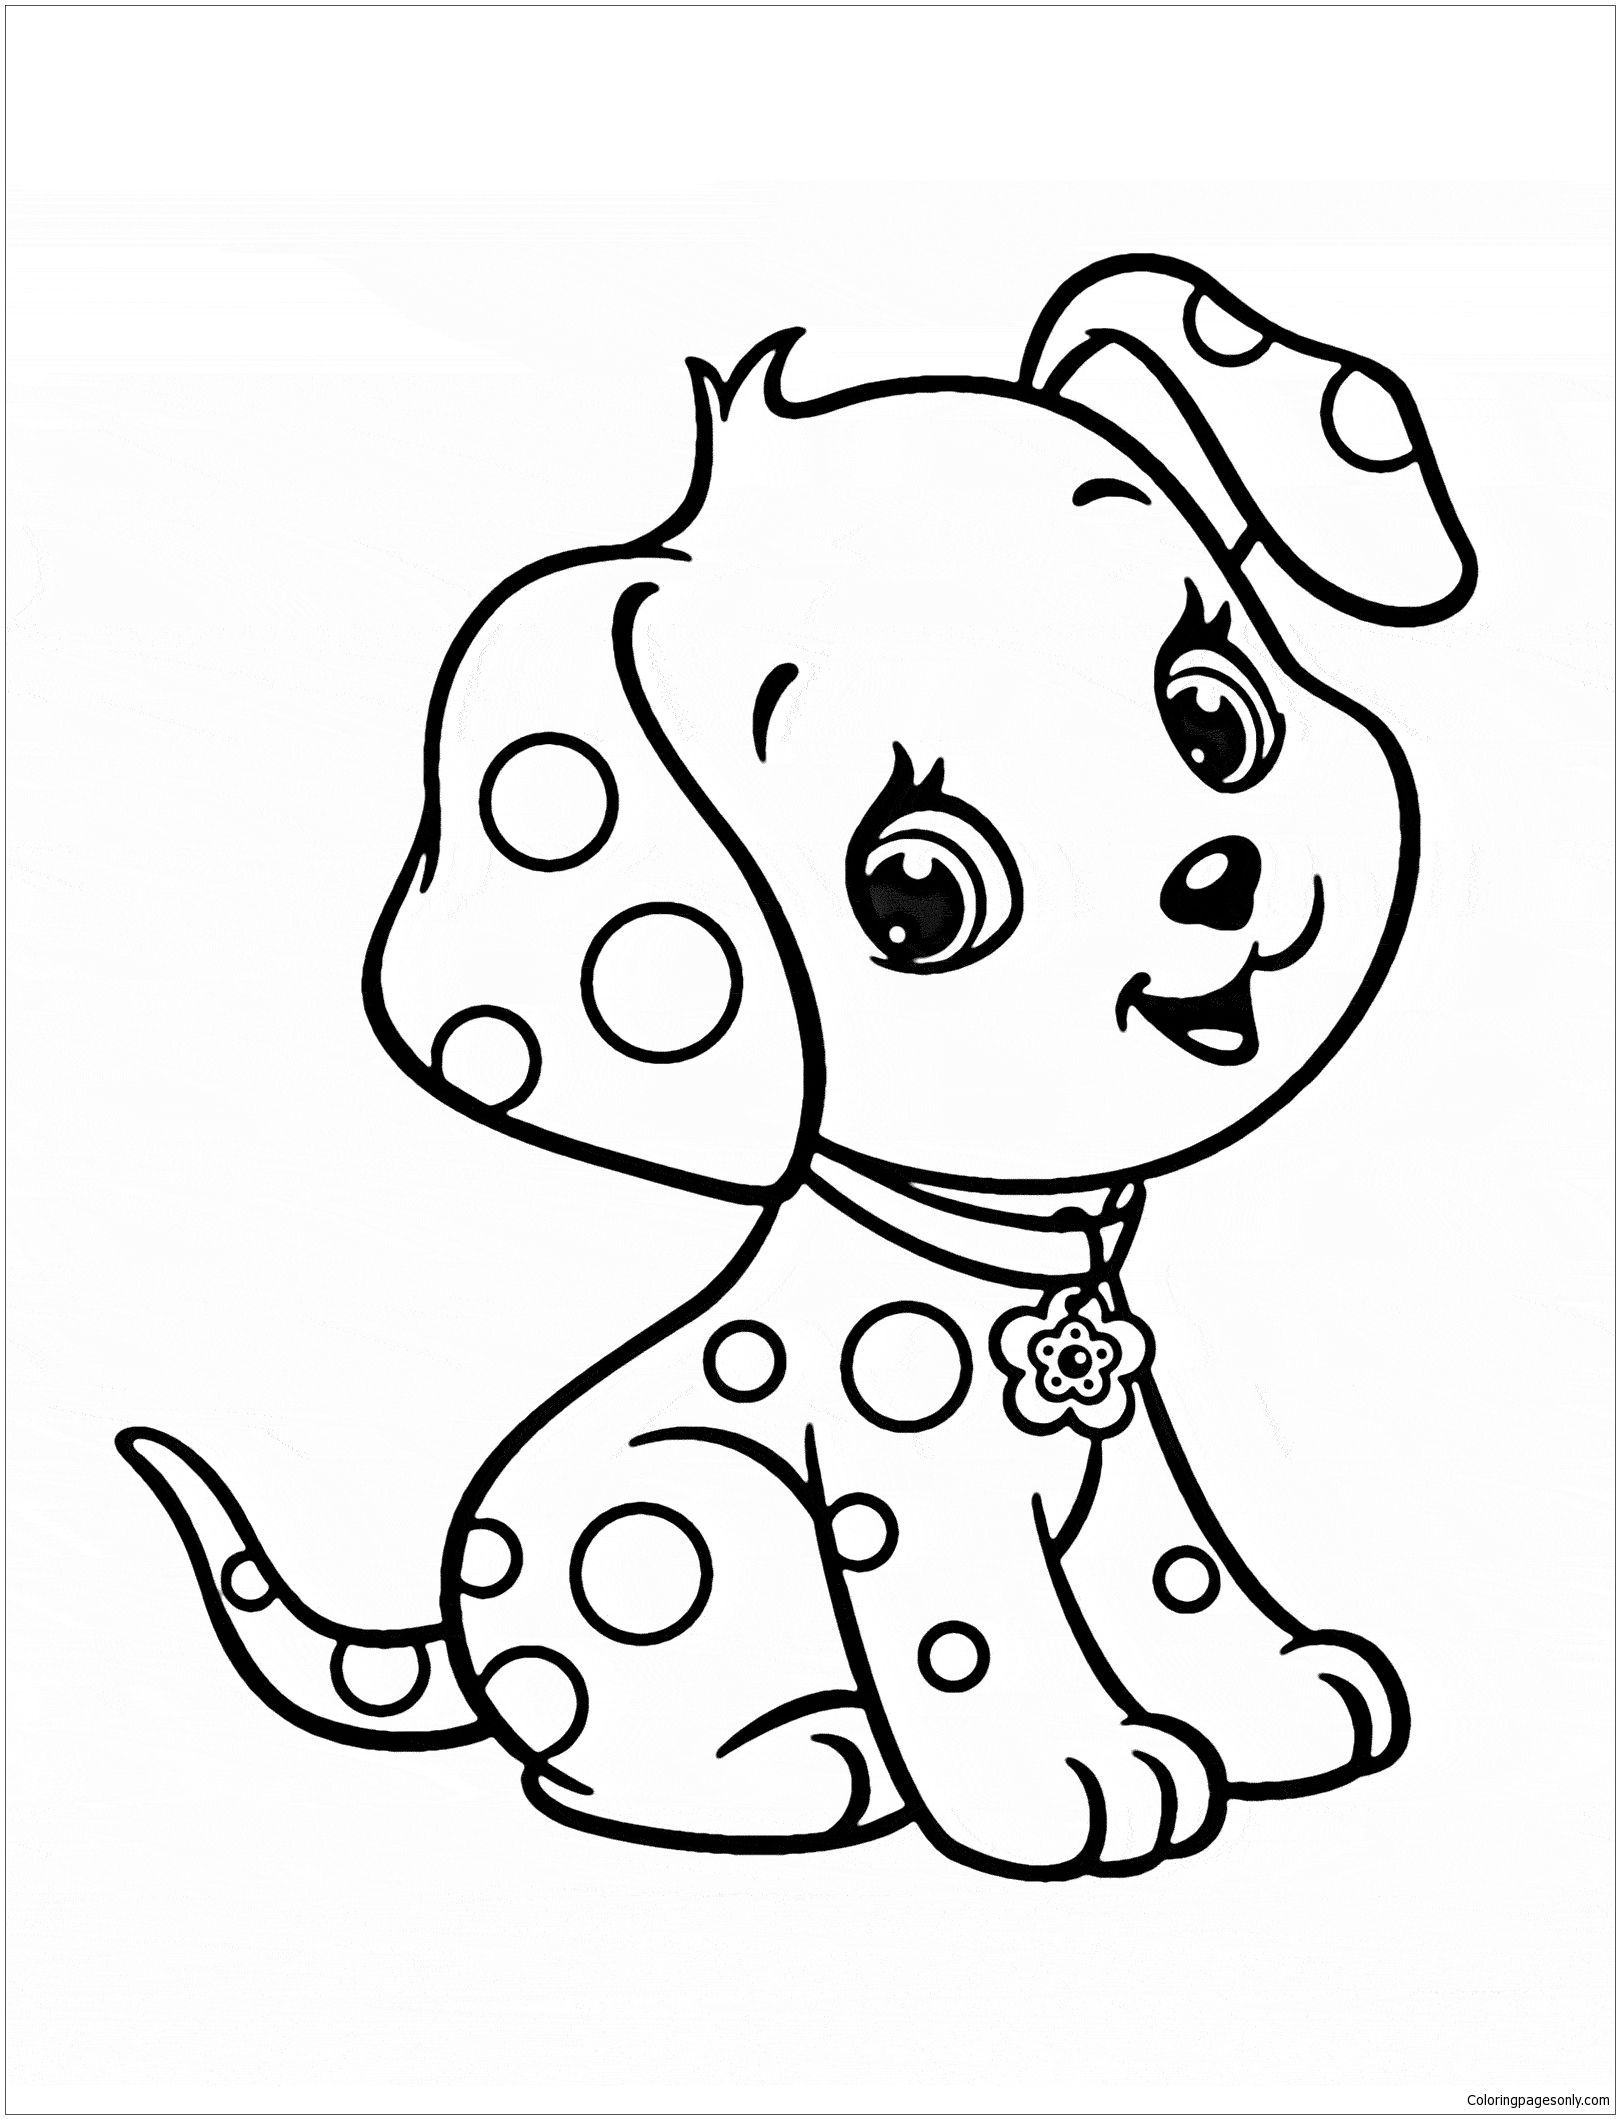 Printable Cute Puppy Coloring Pages Puppy Coloring Pages Animal Coloring Books Dog Coloring Page